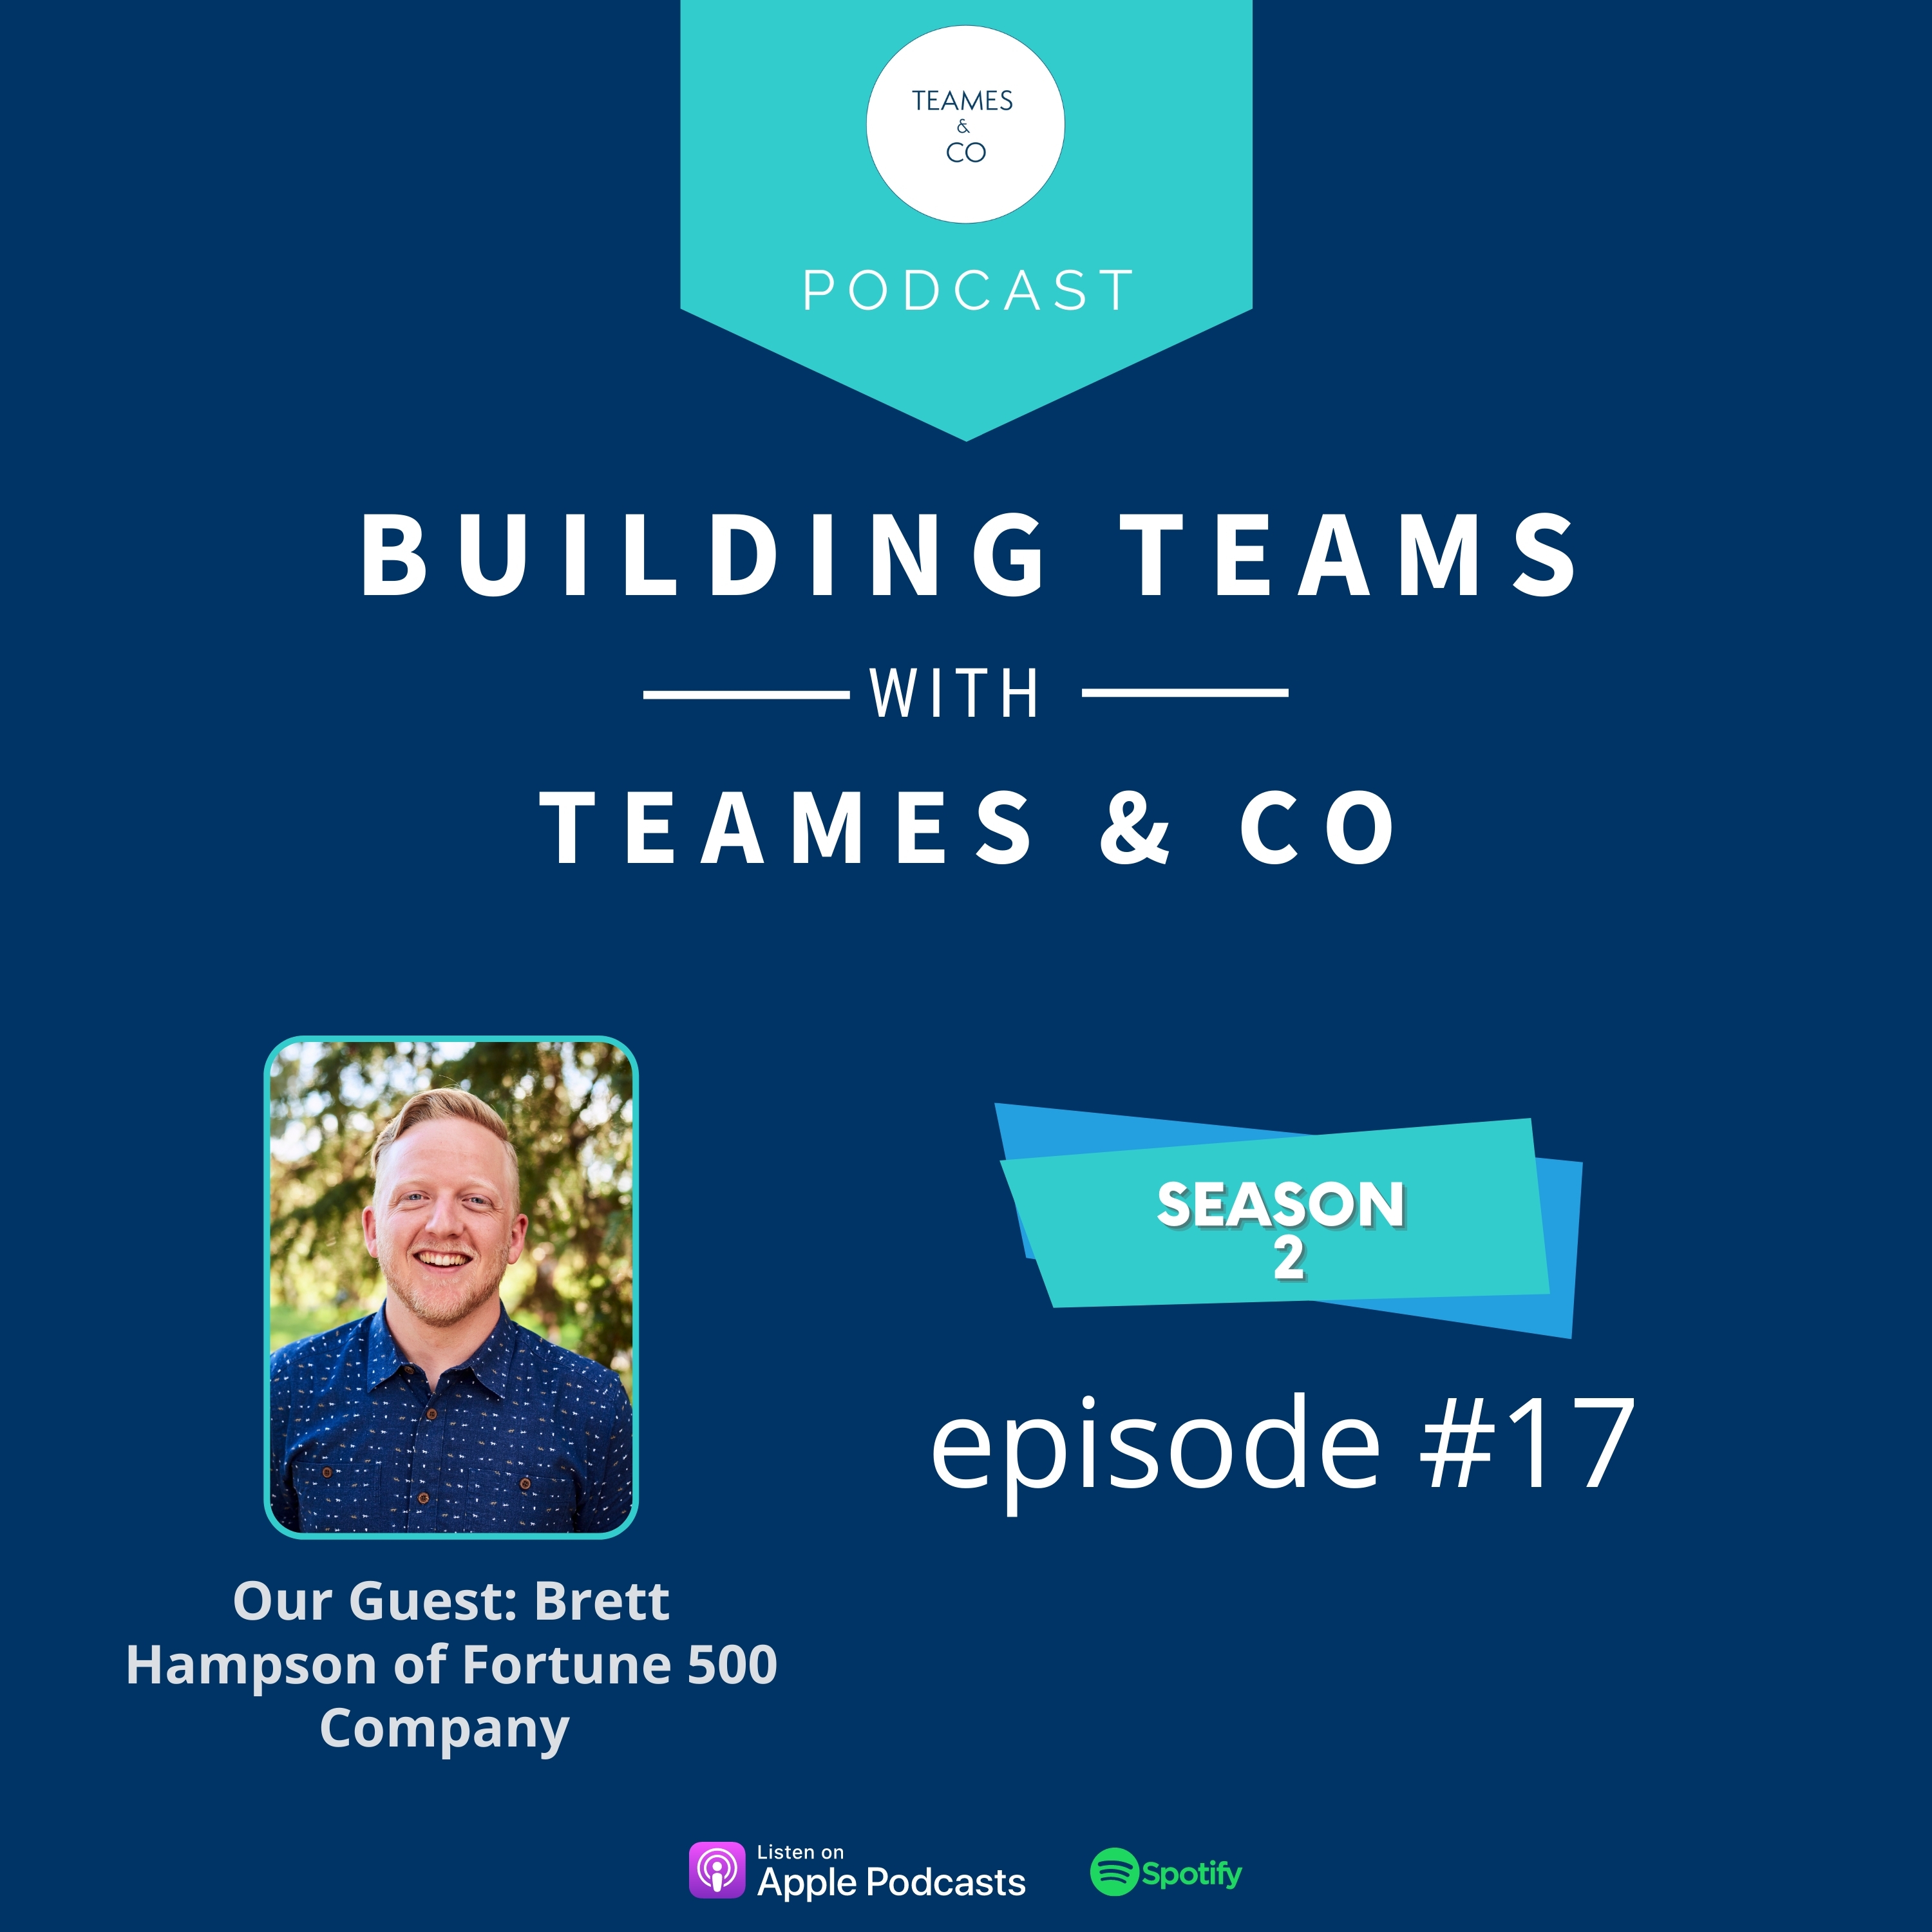 Artwork for podcast Building Teams with TEAMES & CO